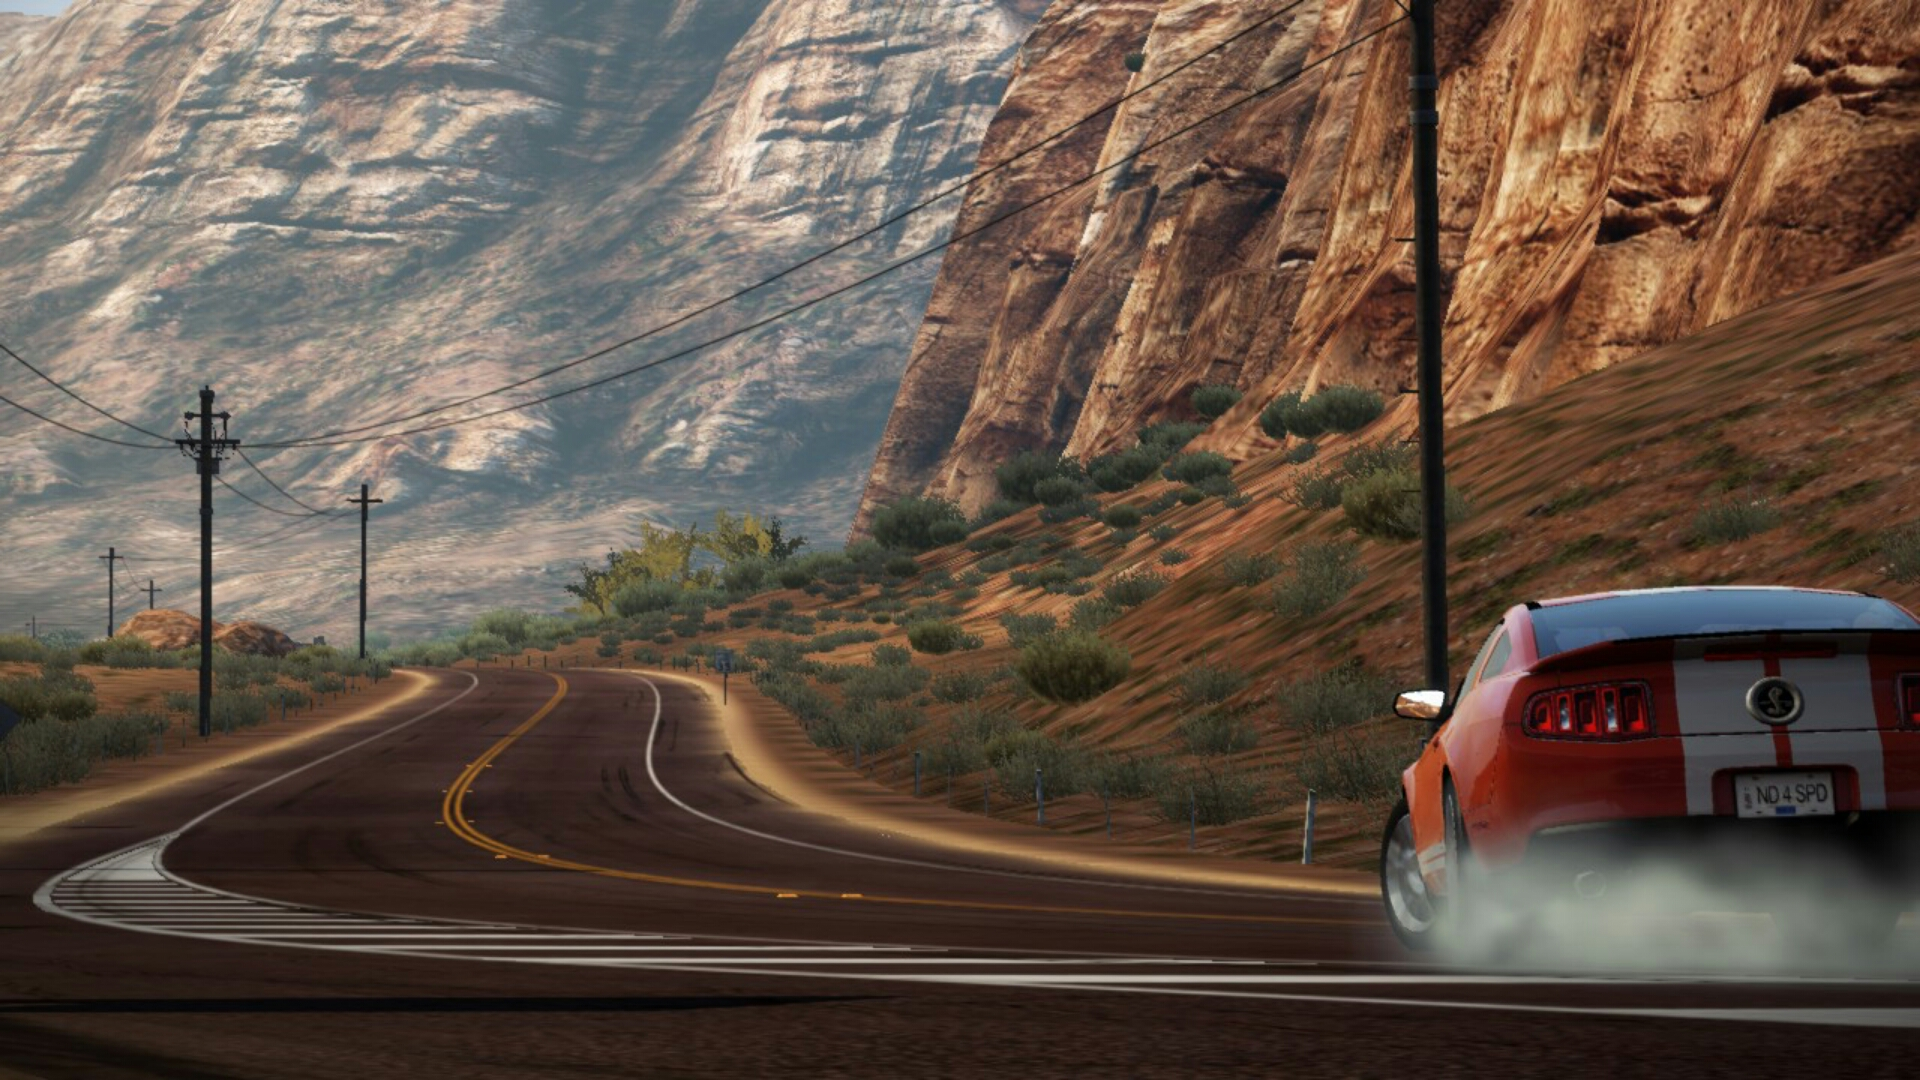 Free Download Need For Speed Hot Pursuit Hd Wallpaper Background